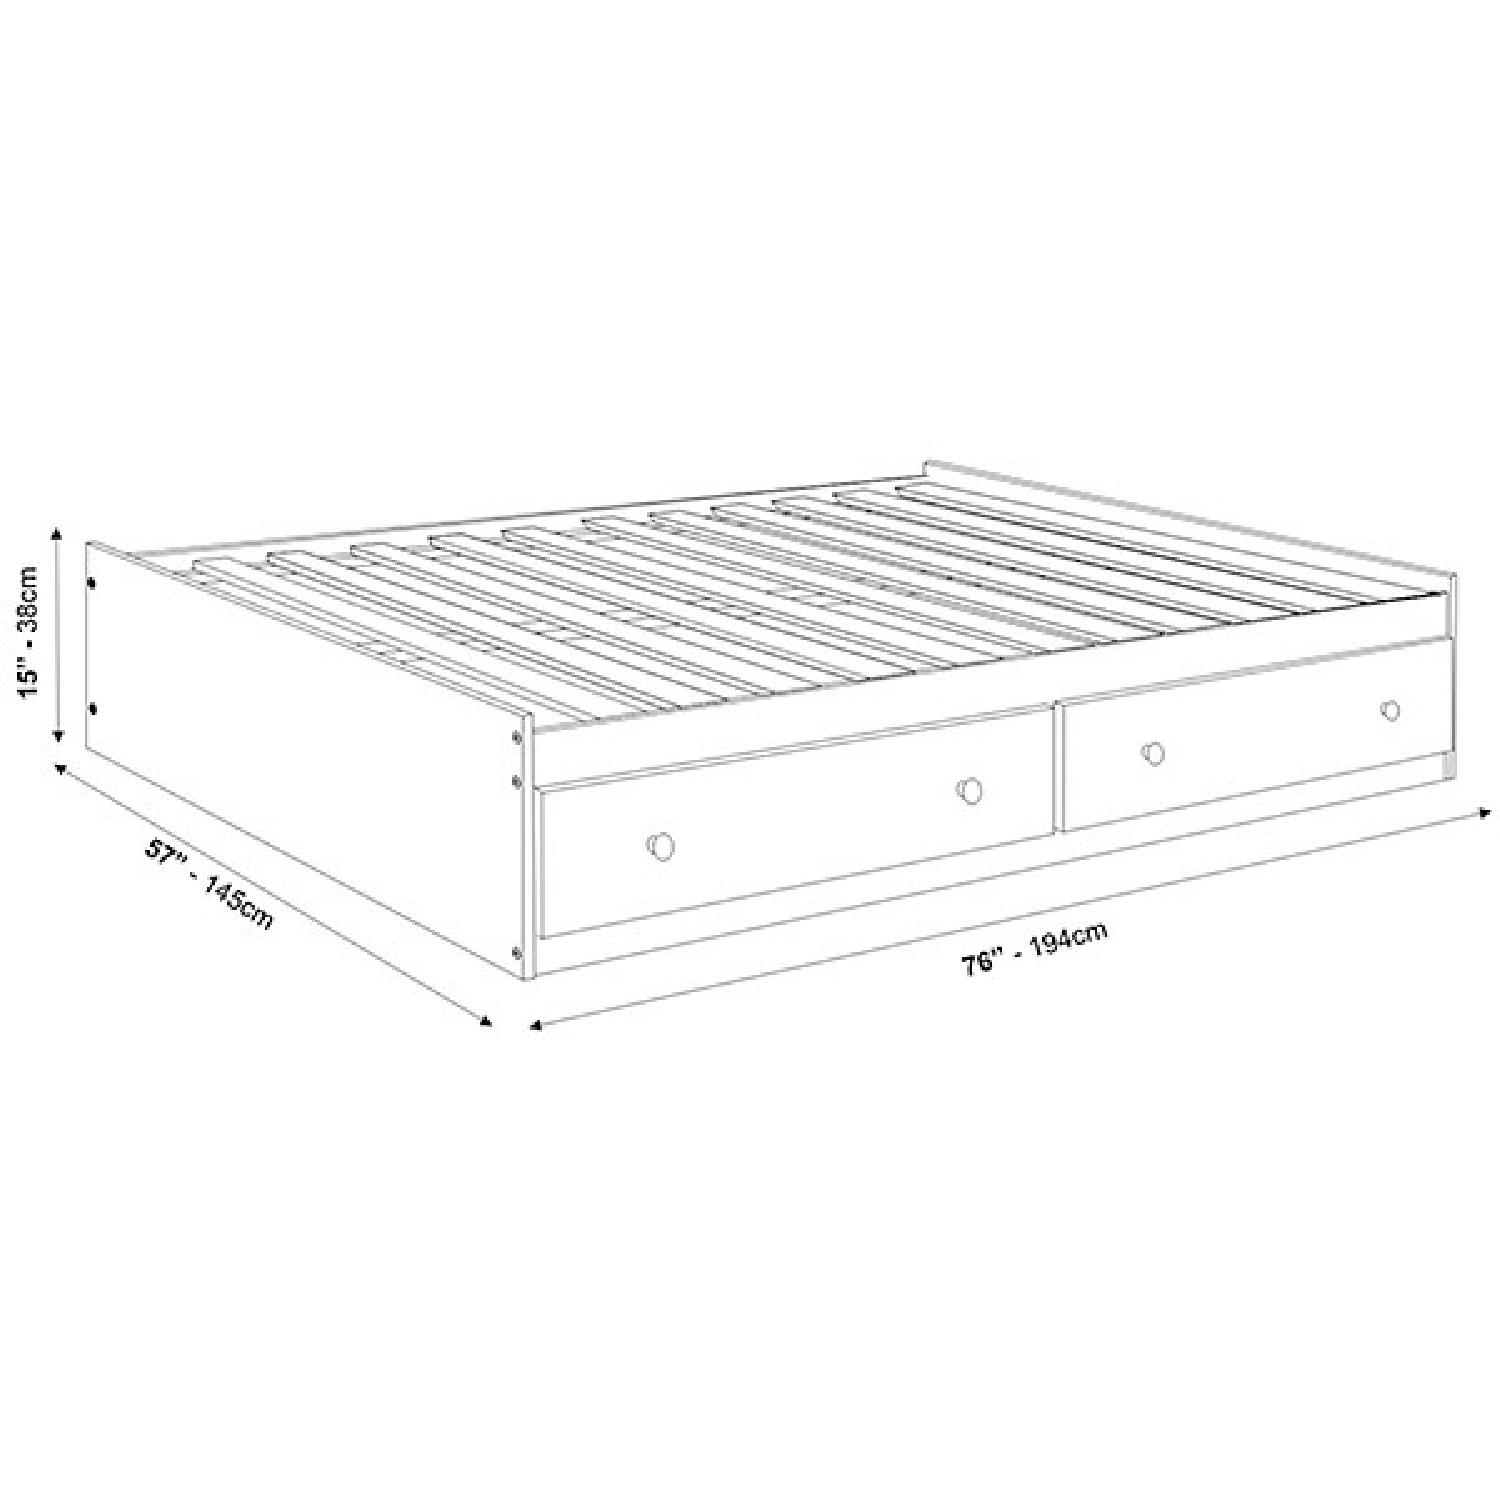 Full Size Solid Wood Bed in Java Finish w/ Storage Drawers - image-1